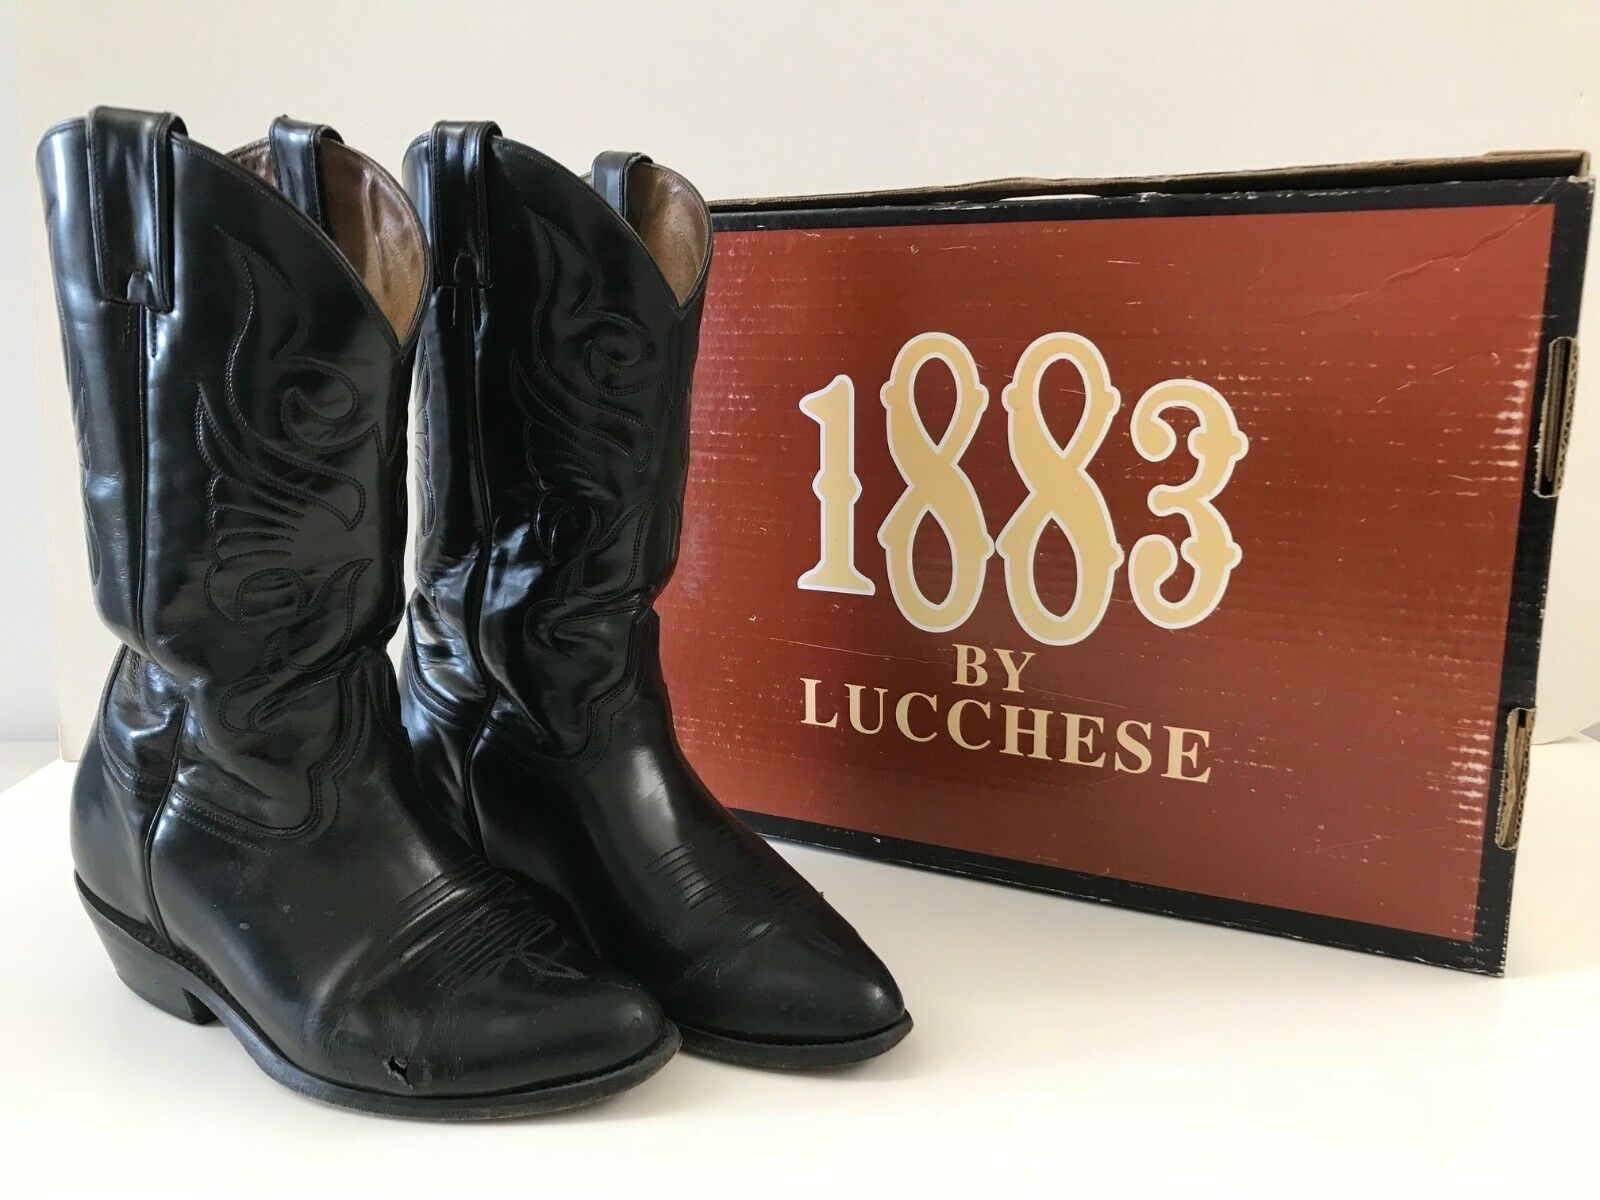 1883 by Lucchese Black Leather Low Heel Western Boots Women's Size 8.5, 100.00